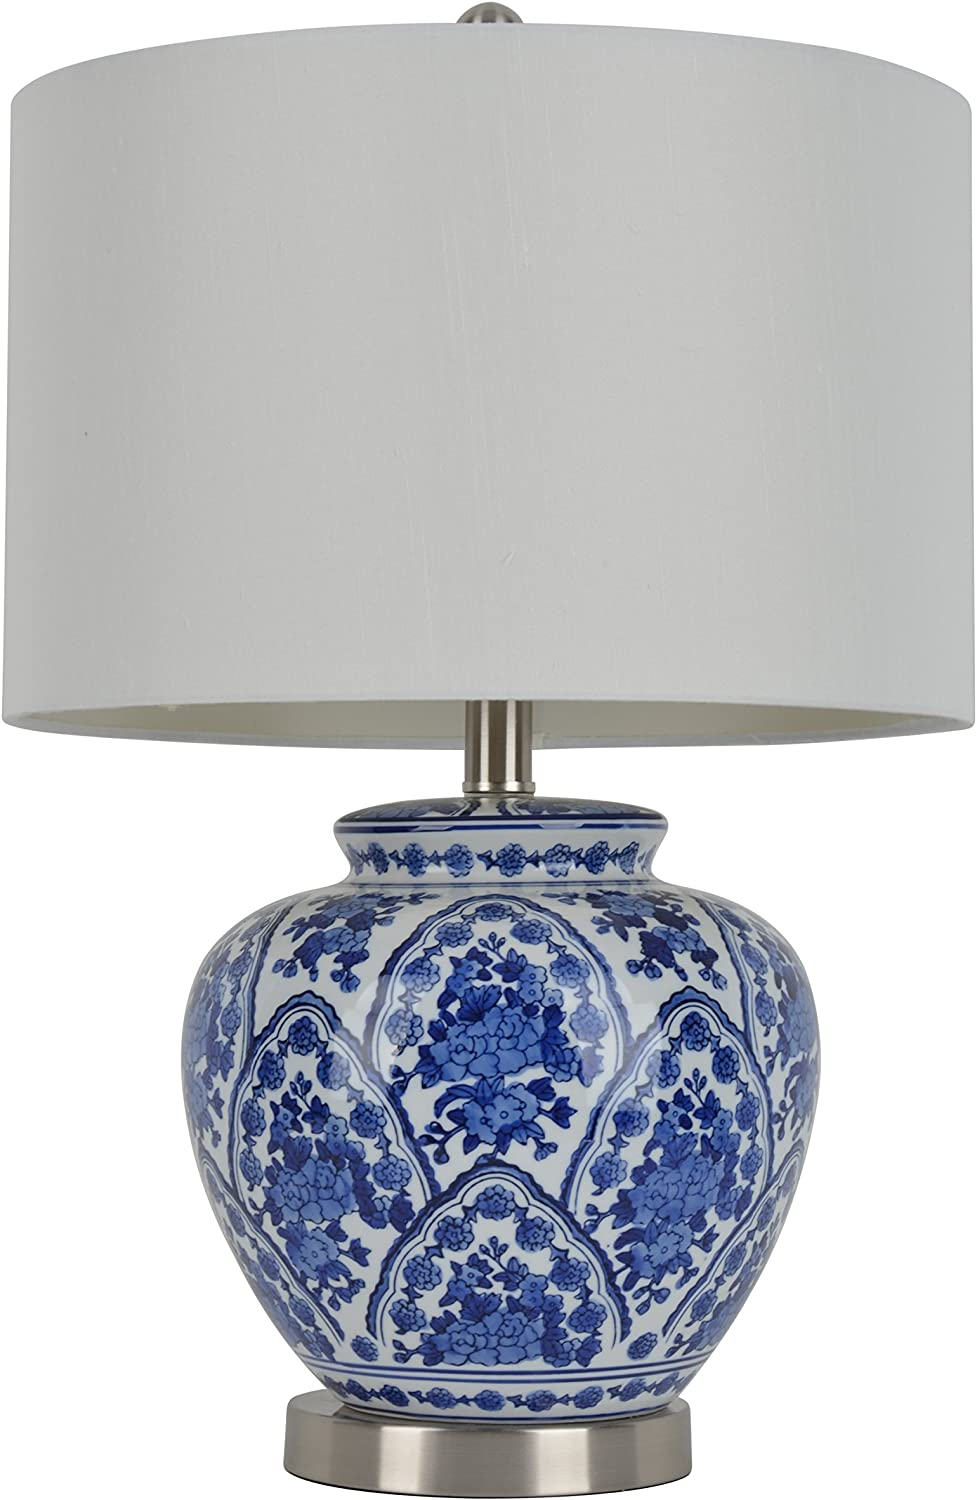 "Décor Therapy TL7912 20"" Ceramic Table Lamp, Blue/White Finish"